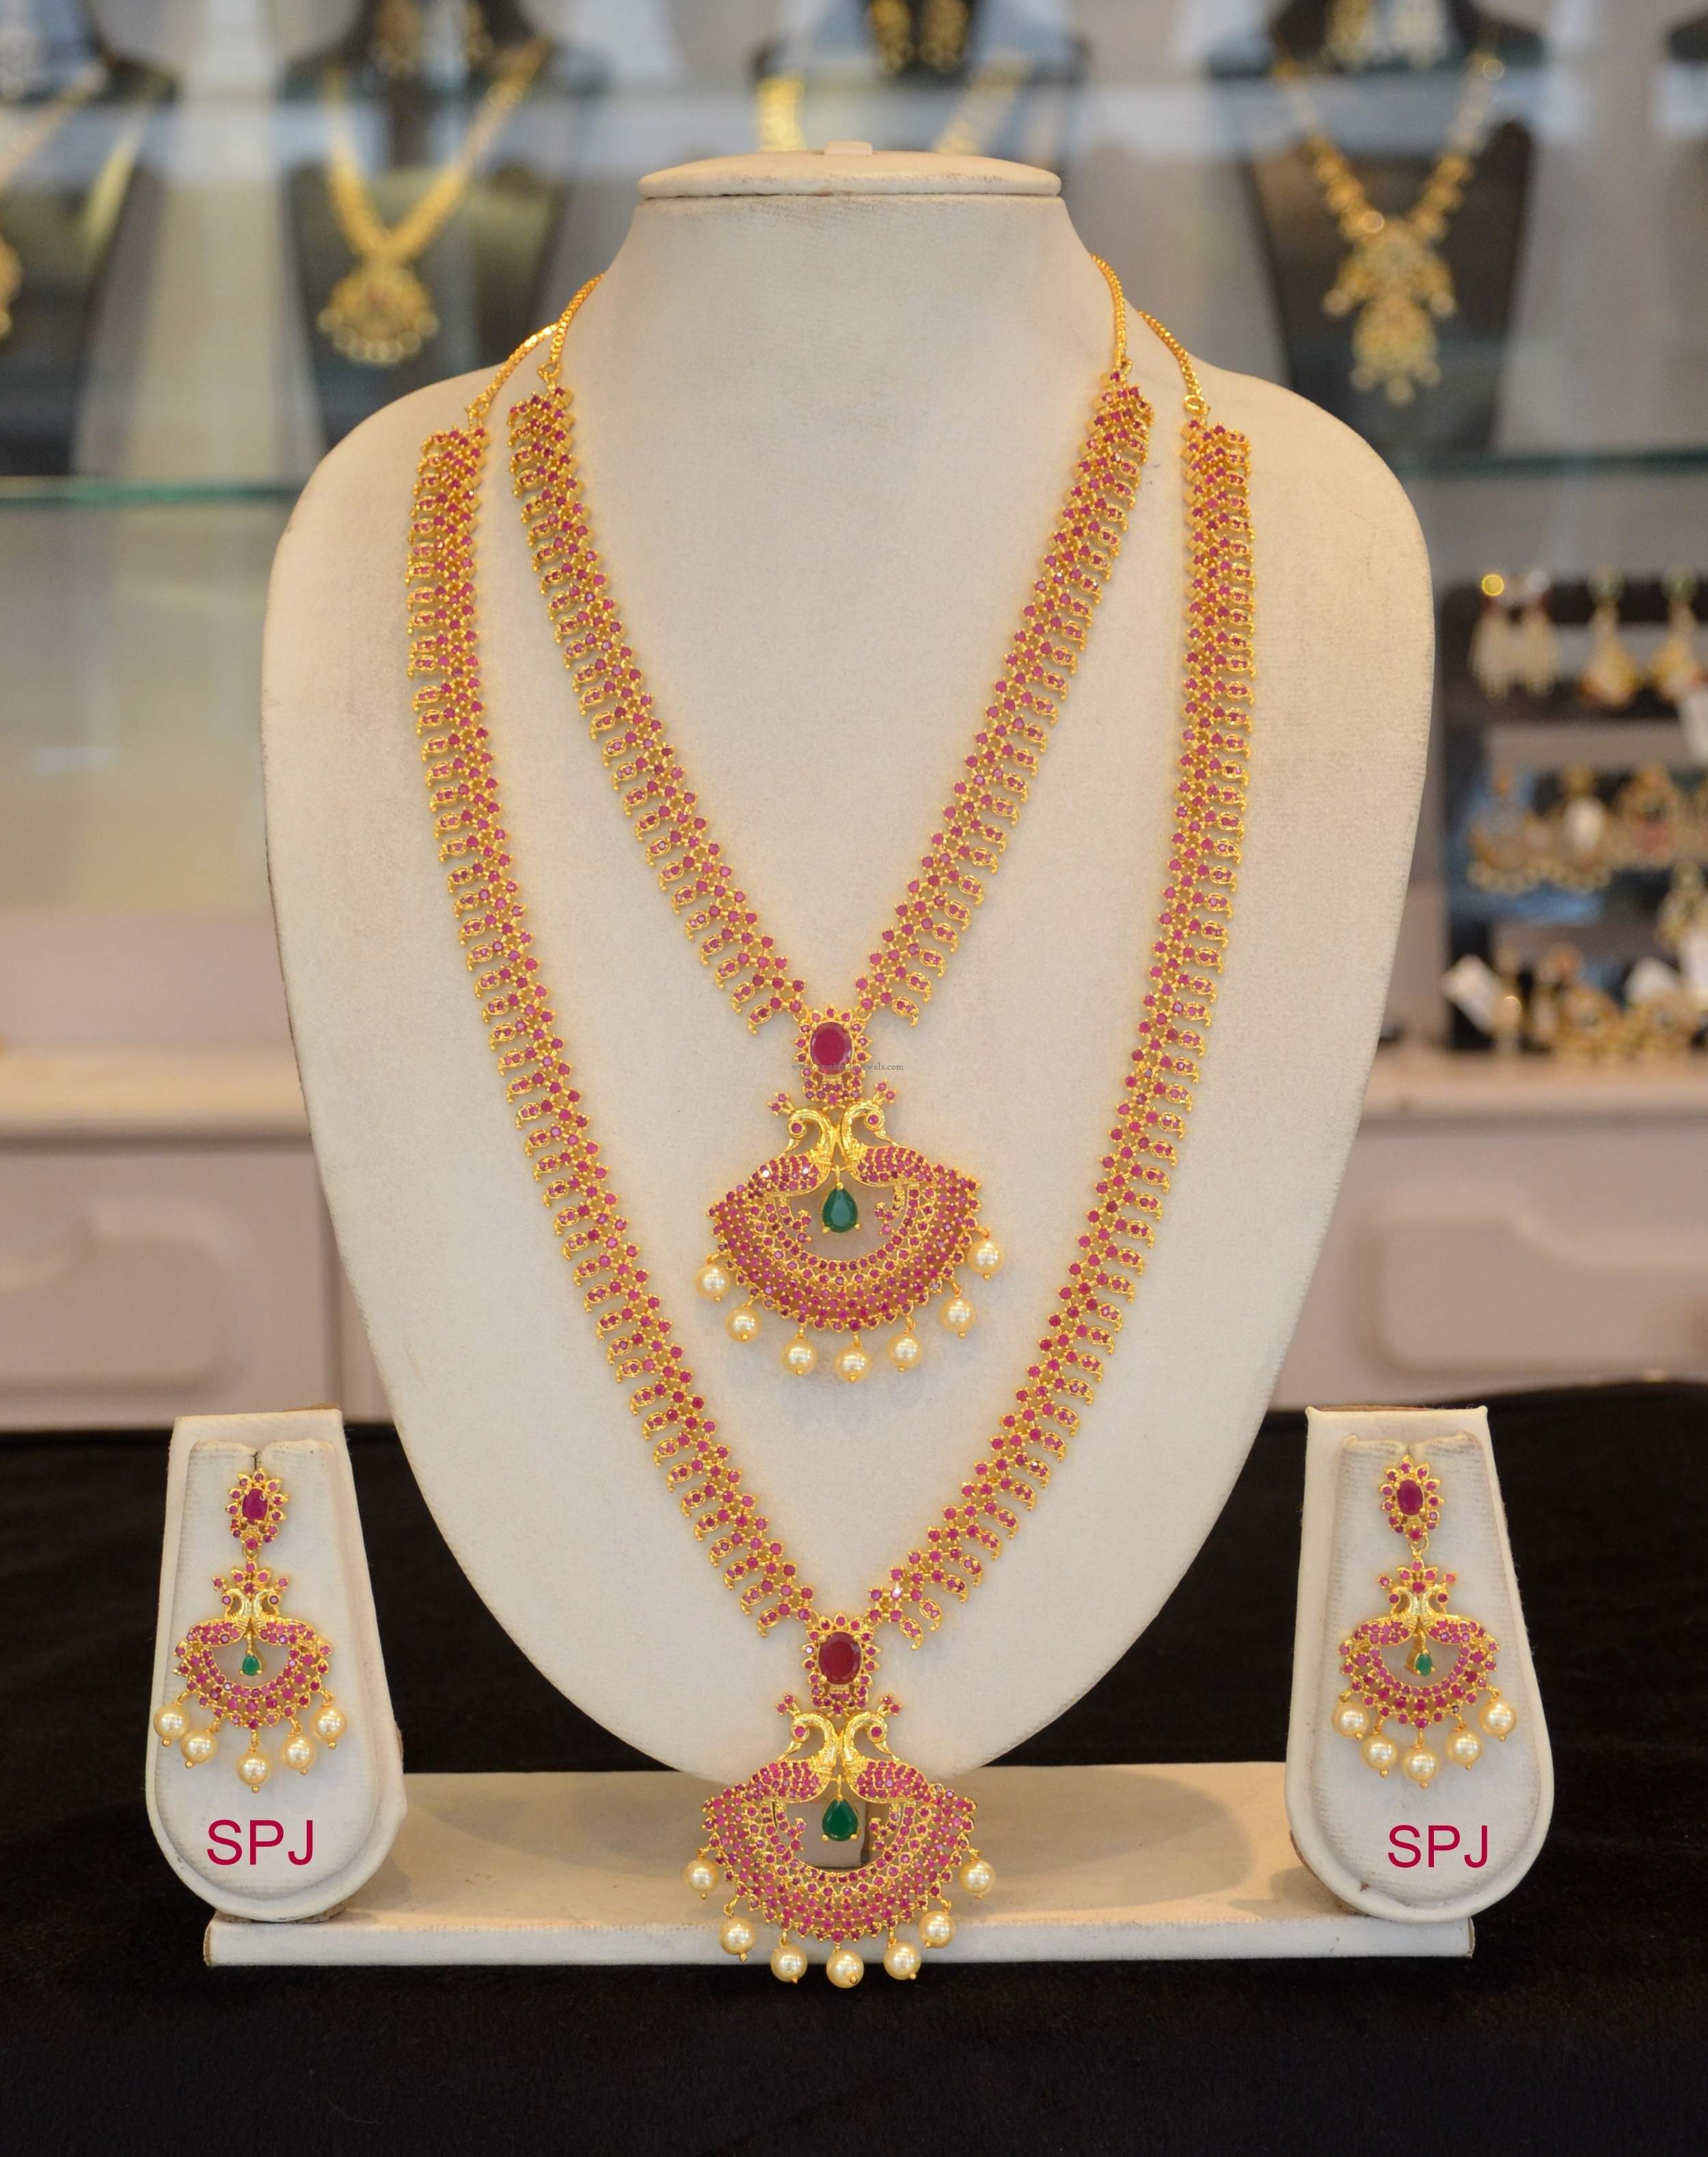 Marriage Jewellery Set Design Rescar Innovations2019 Org